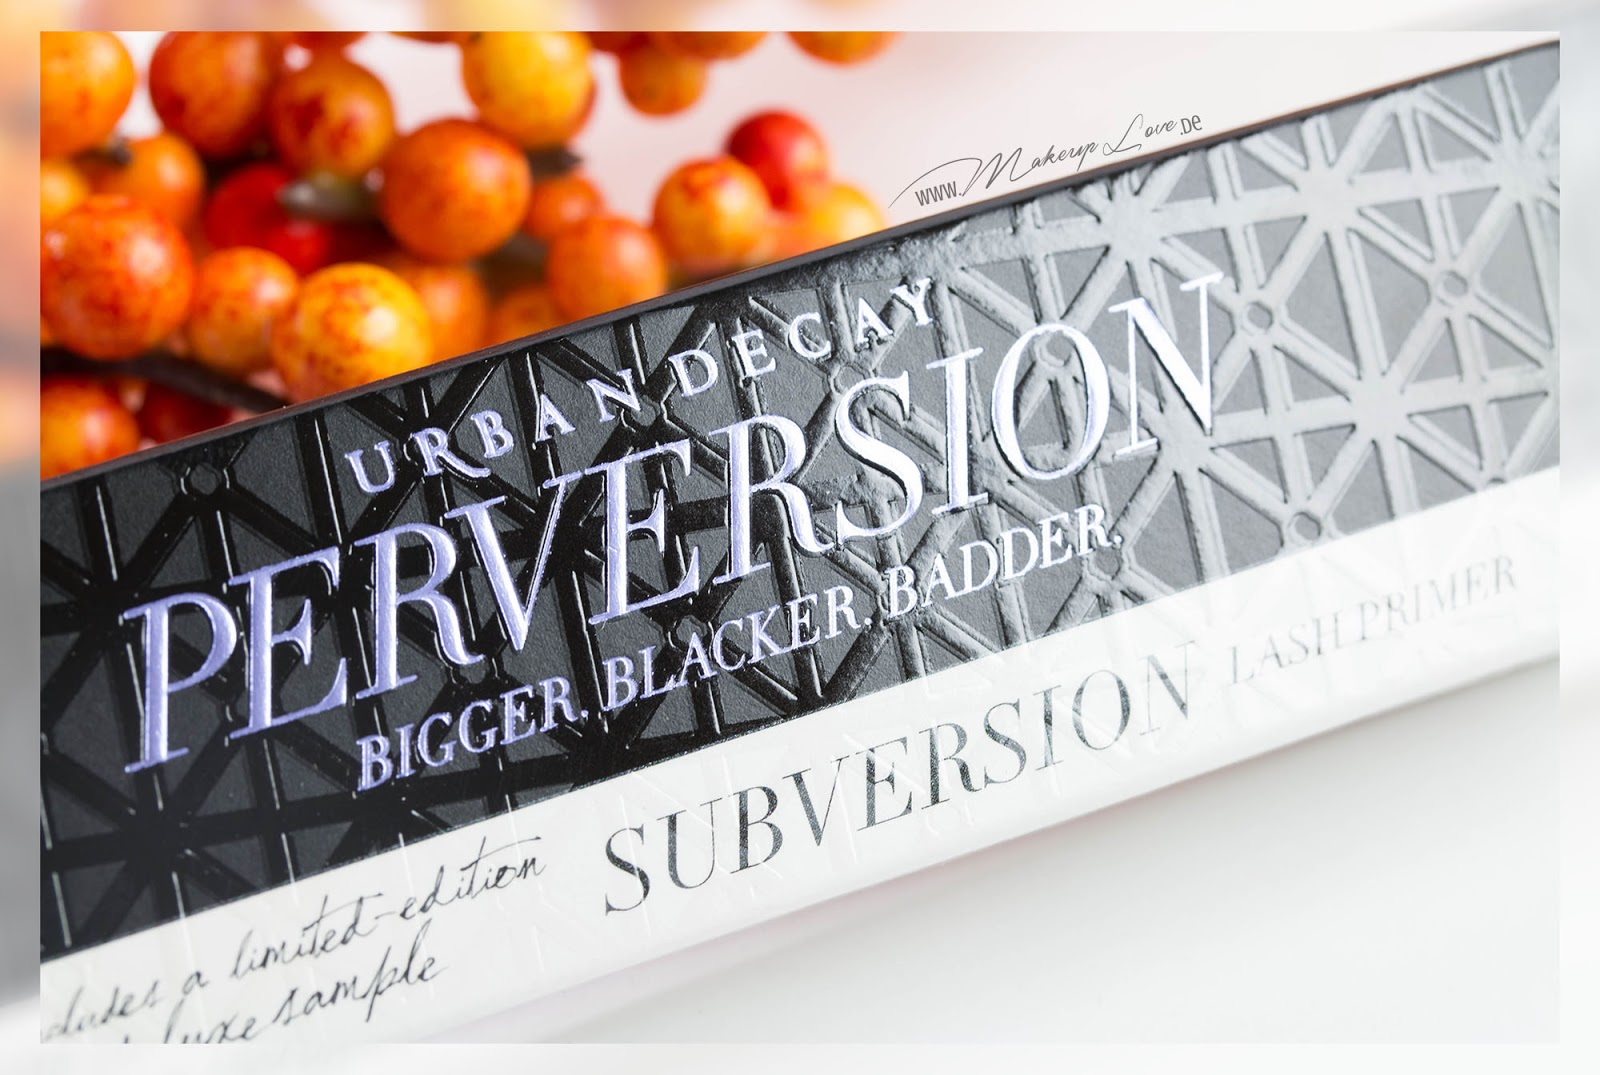 Urban Decay Perversion Mascara Subversion Lash Primer